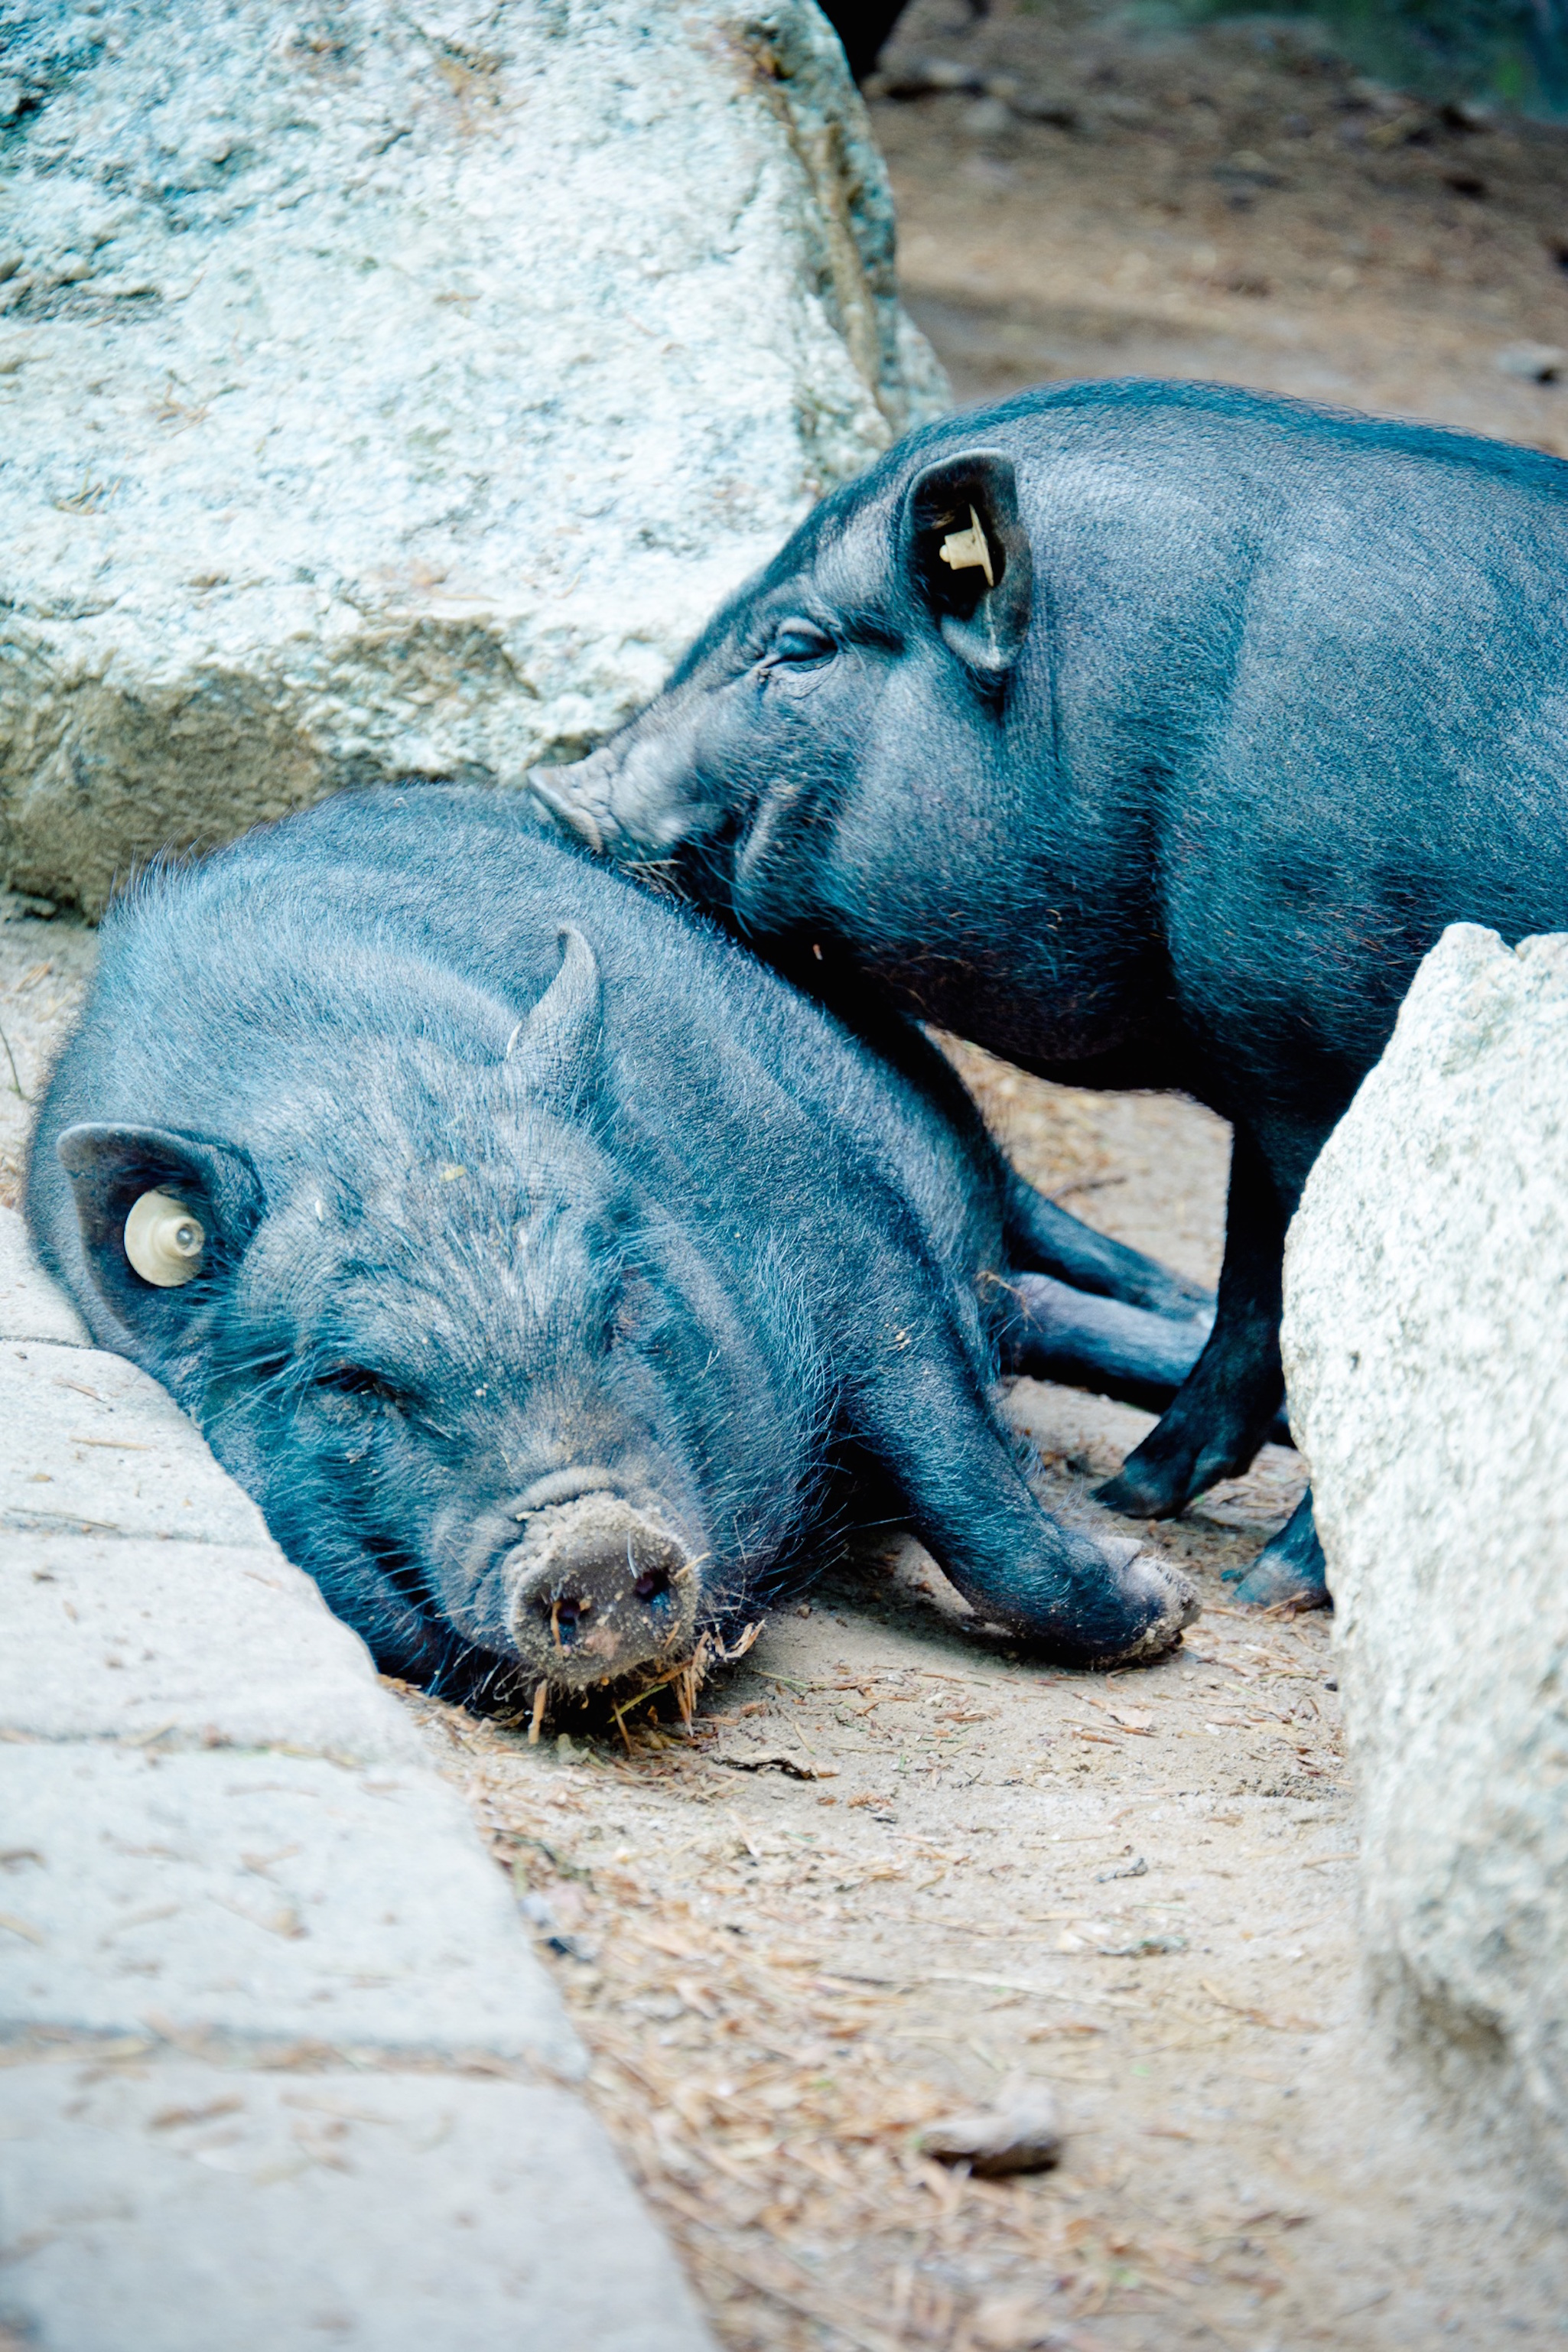 pot-bellied-pig-1405169